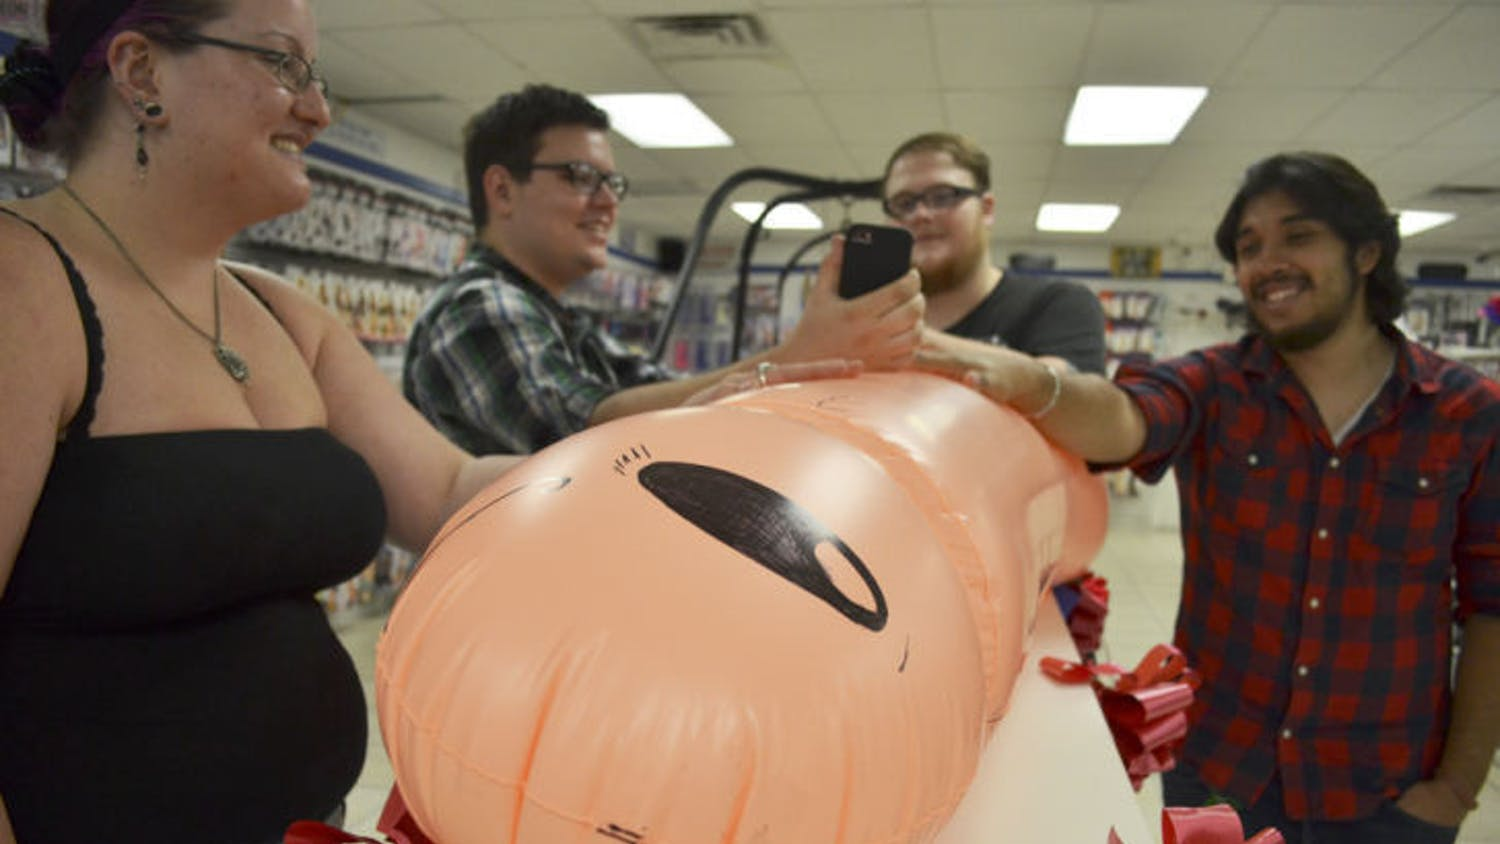 """Contestants gather around a five-and-a-half foot long inflated penis for X-Mart's """"Longest Handy Ever Contest"""" held Saturday at the store."""